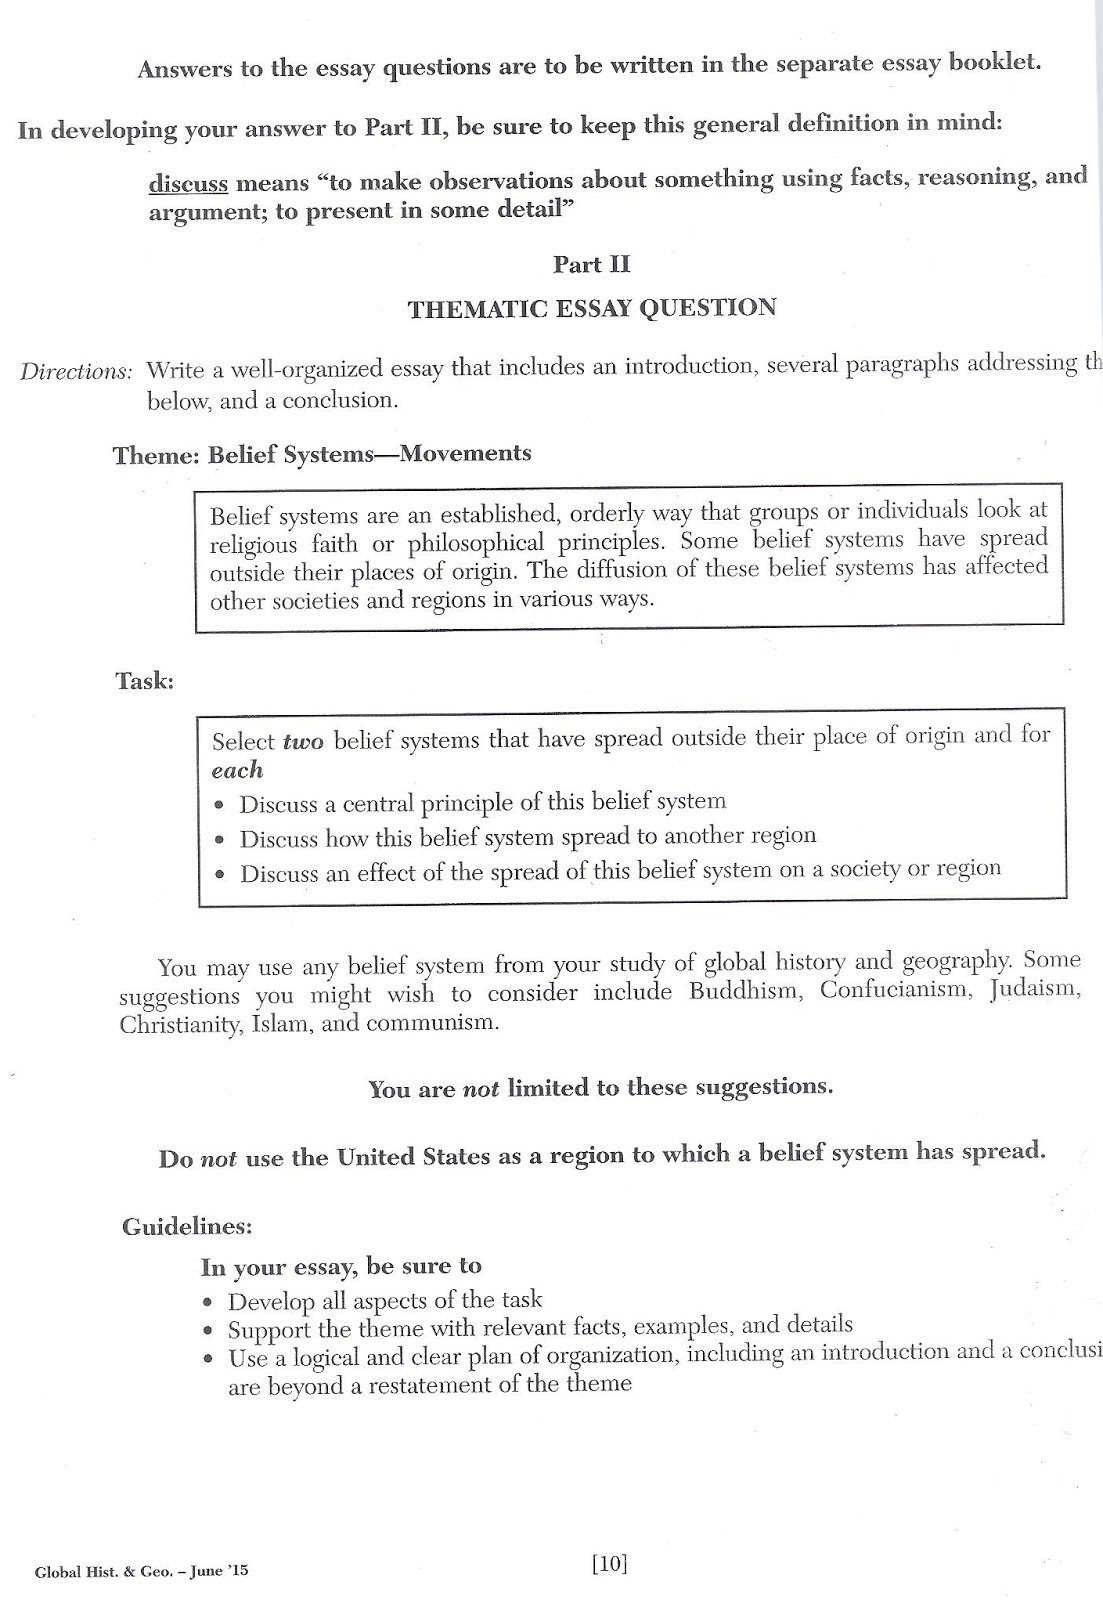 Nys regents essay questions